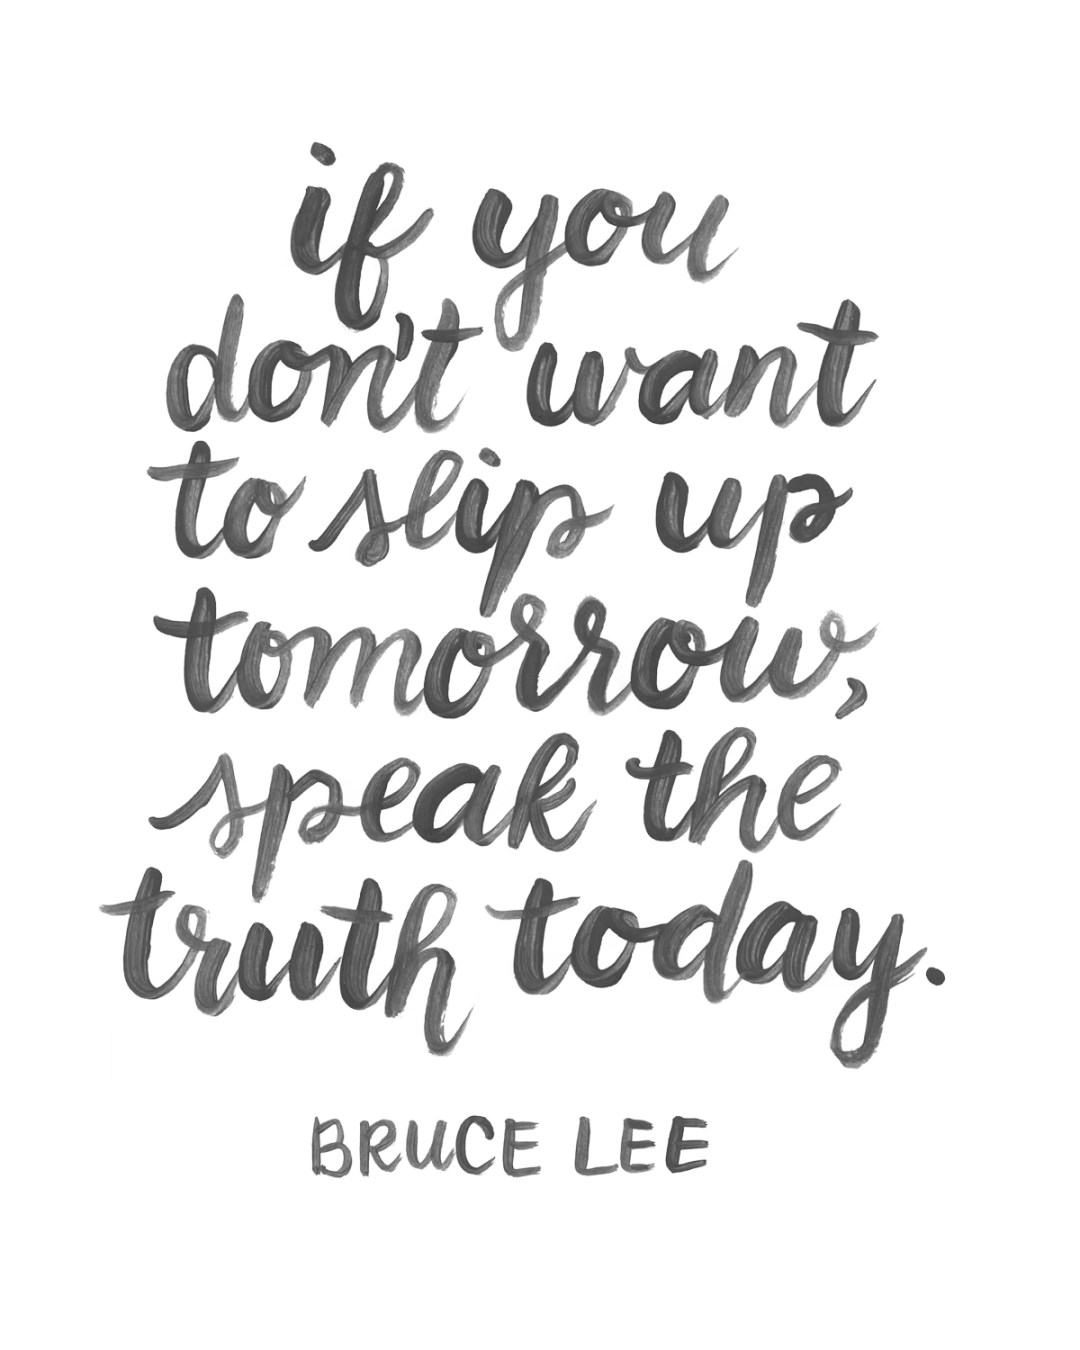 Bruce Lee Truth Quote - www.randomolive.com